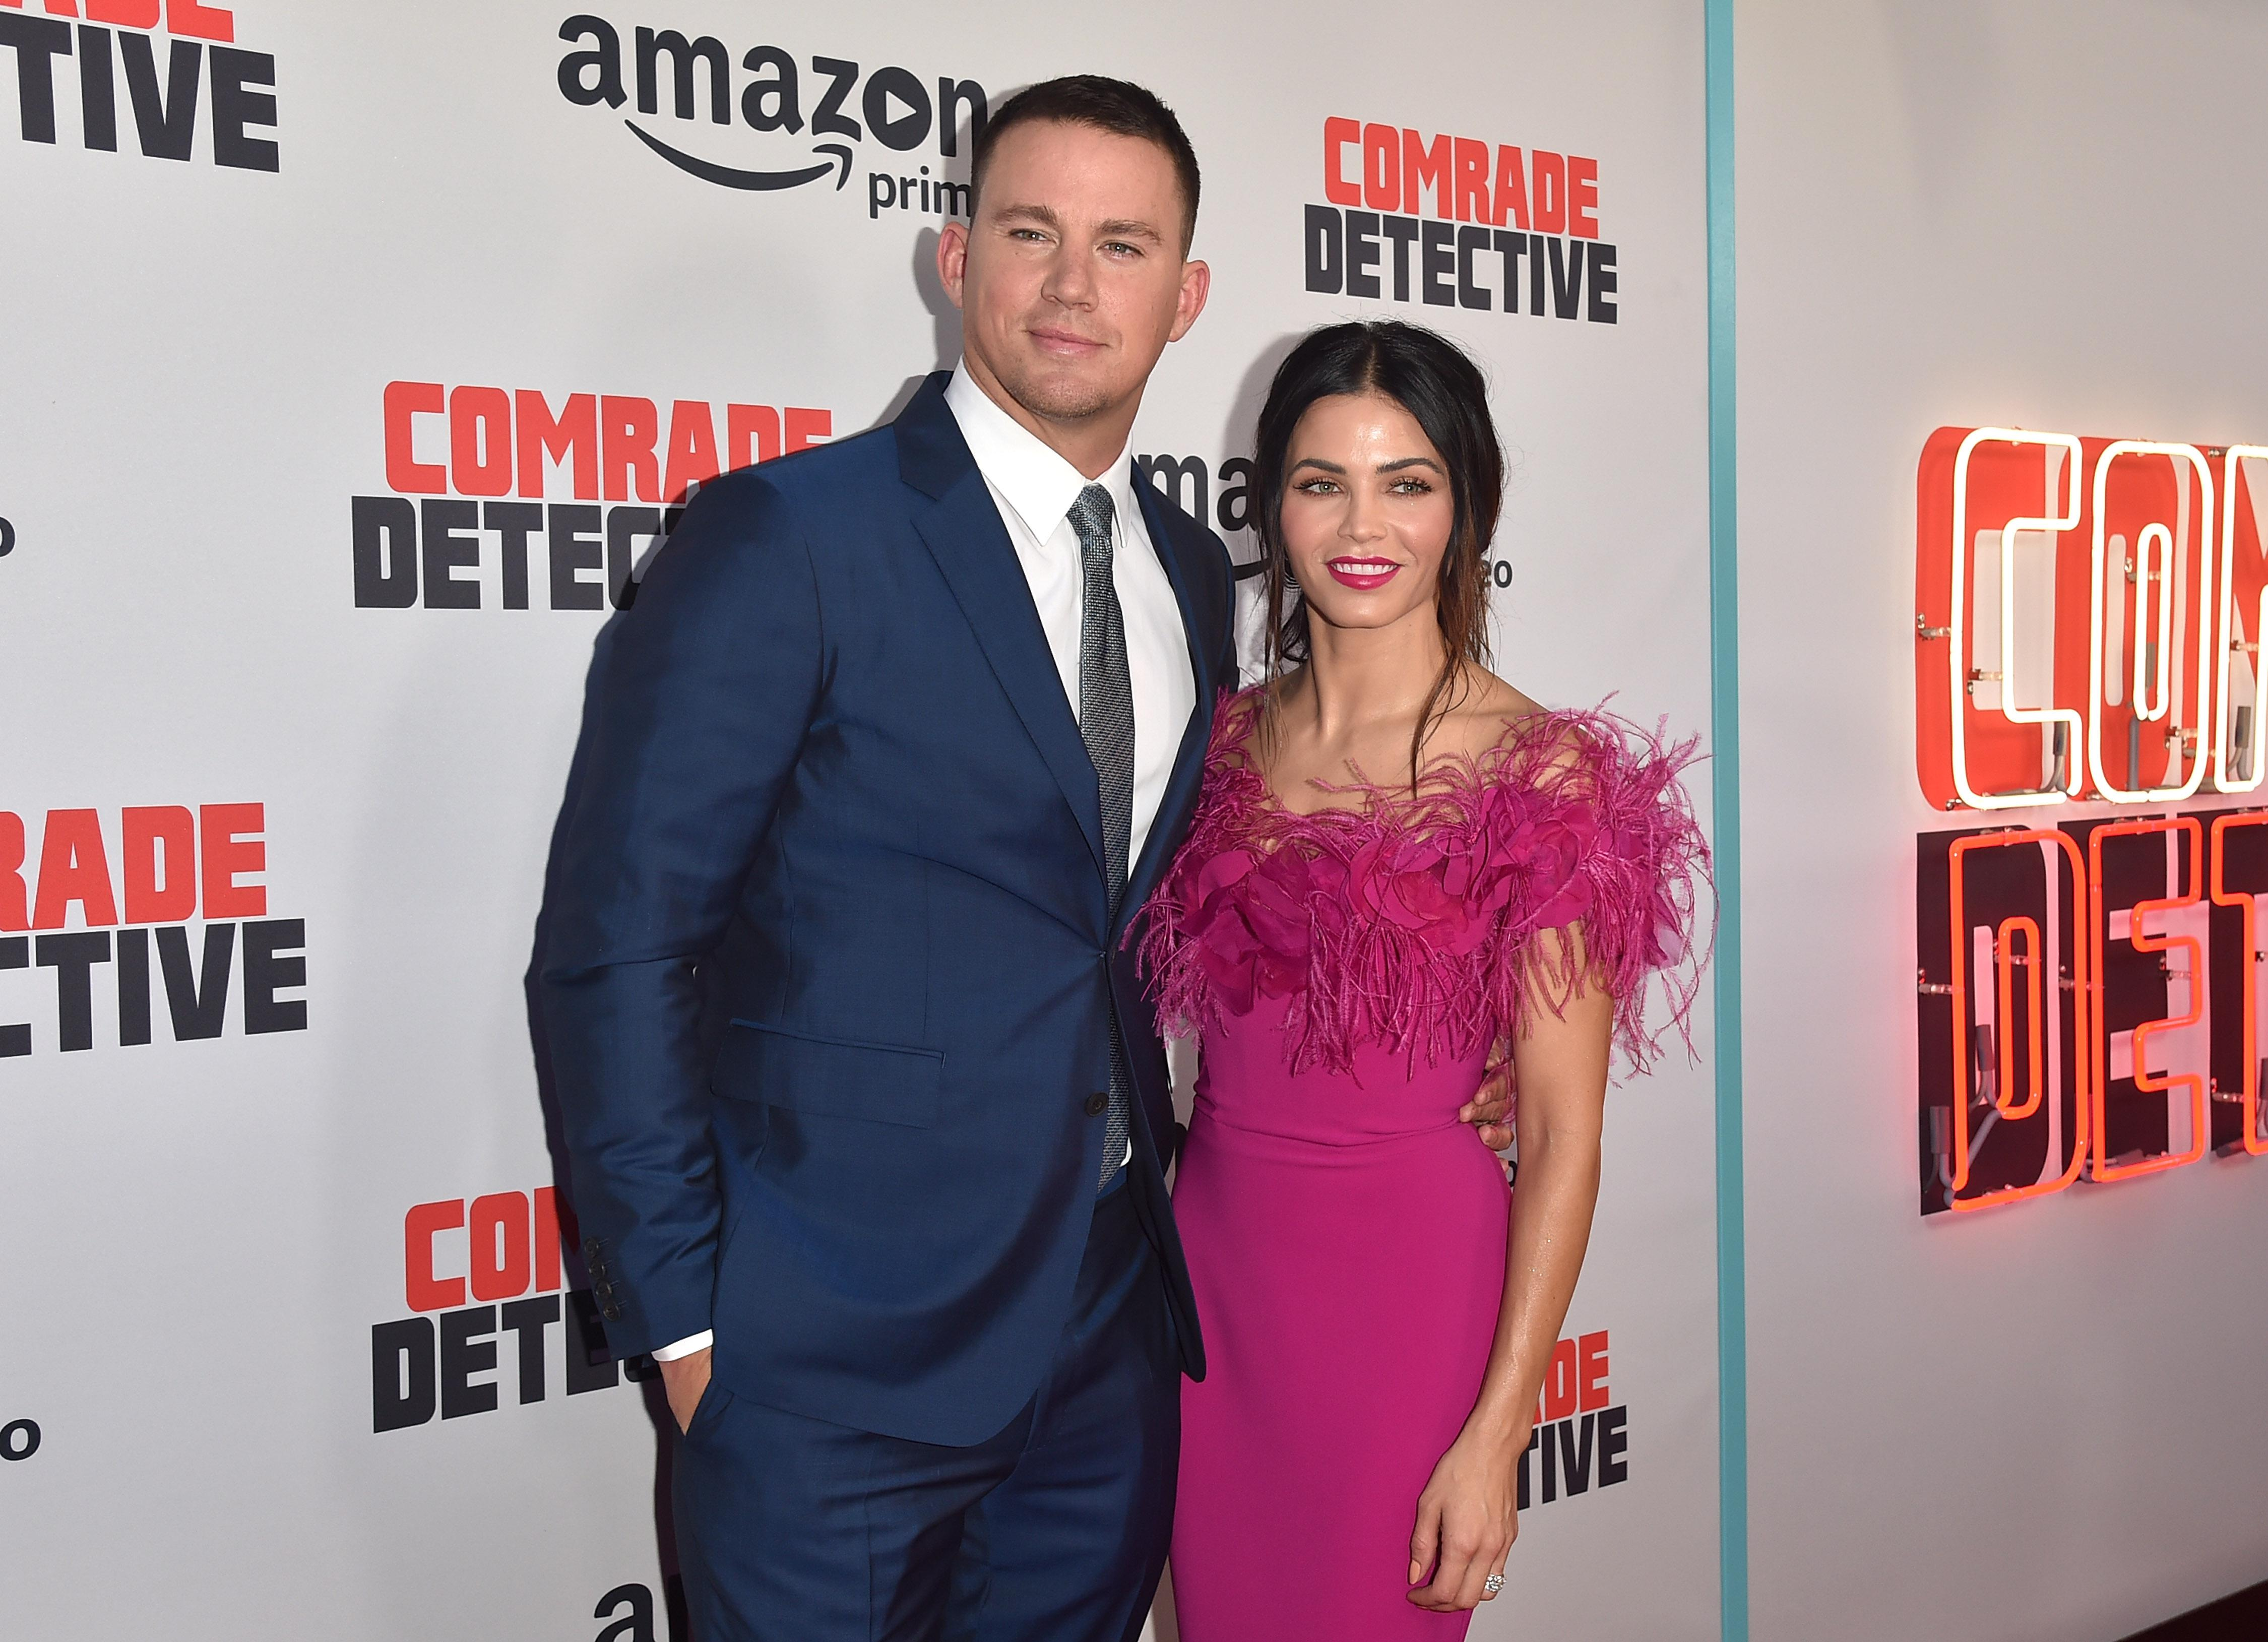 Channing Tatum and Jenna Dewan Tatum attend the premiere of Amazon's Comrade Detective in 2017.